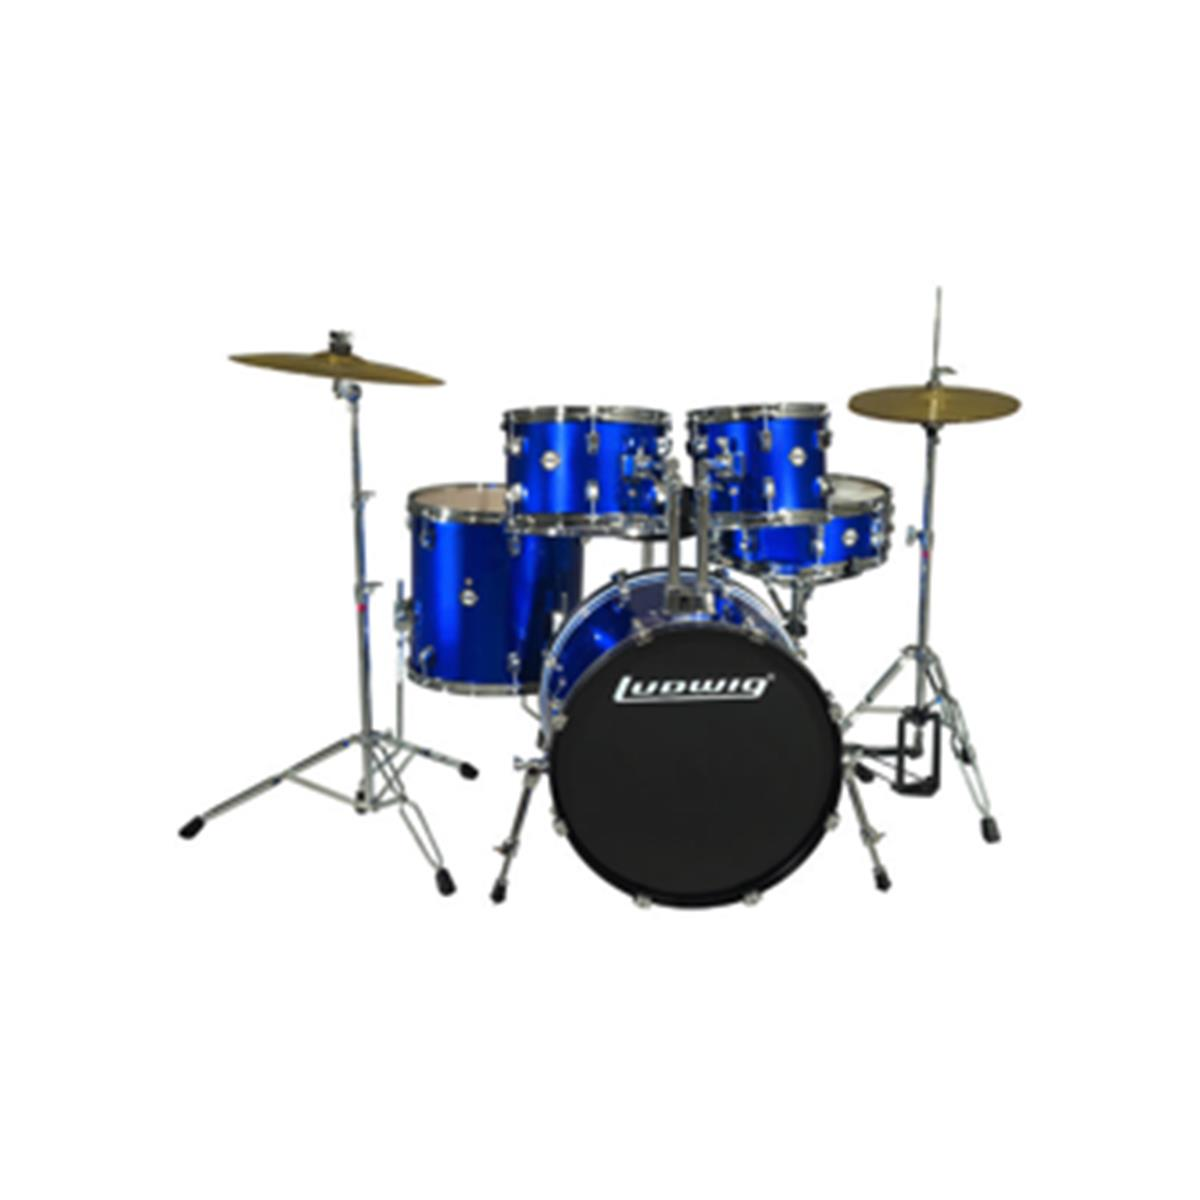 LUDWIG LC1709 - Accent Fusion Deep Blue 10/12/14/20/14 c/HW